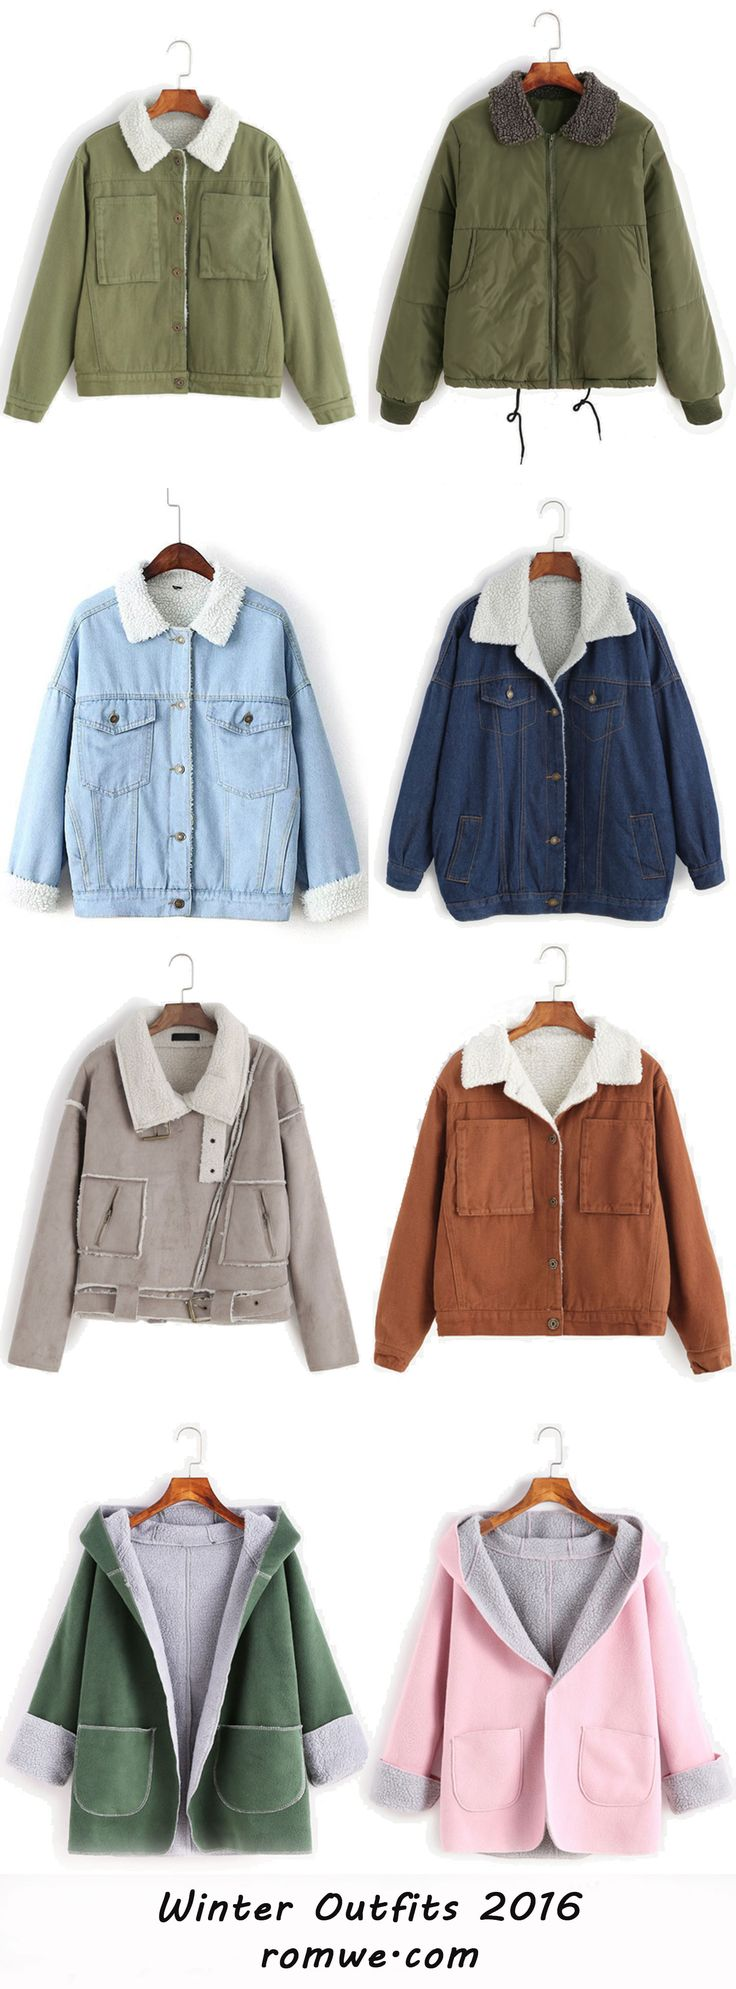 Winter Outfits 2016 from romwe.com